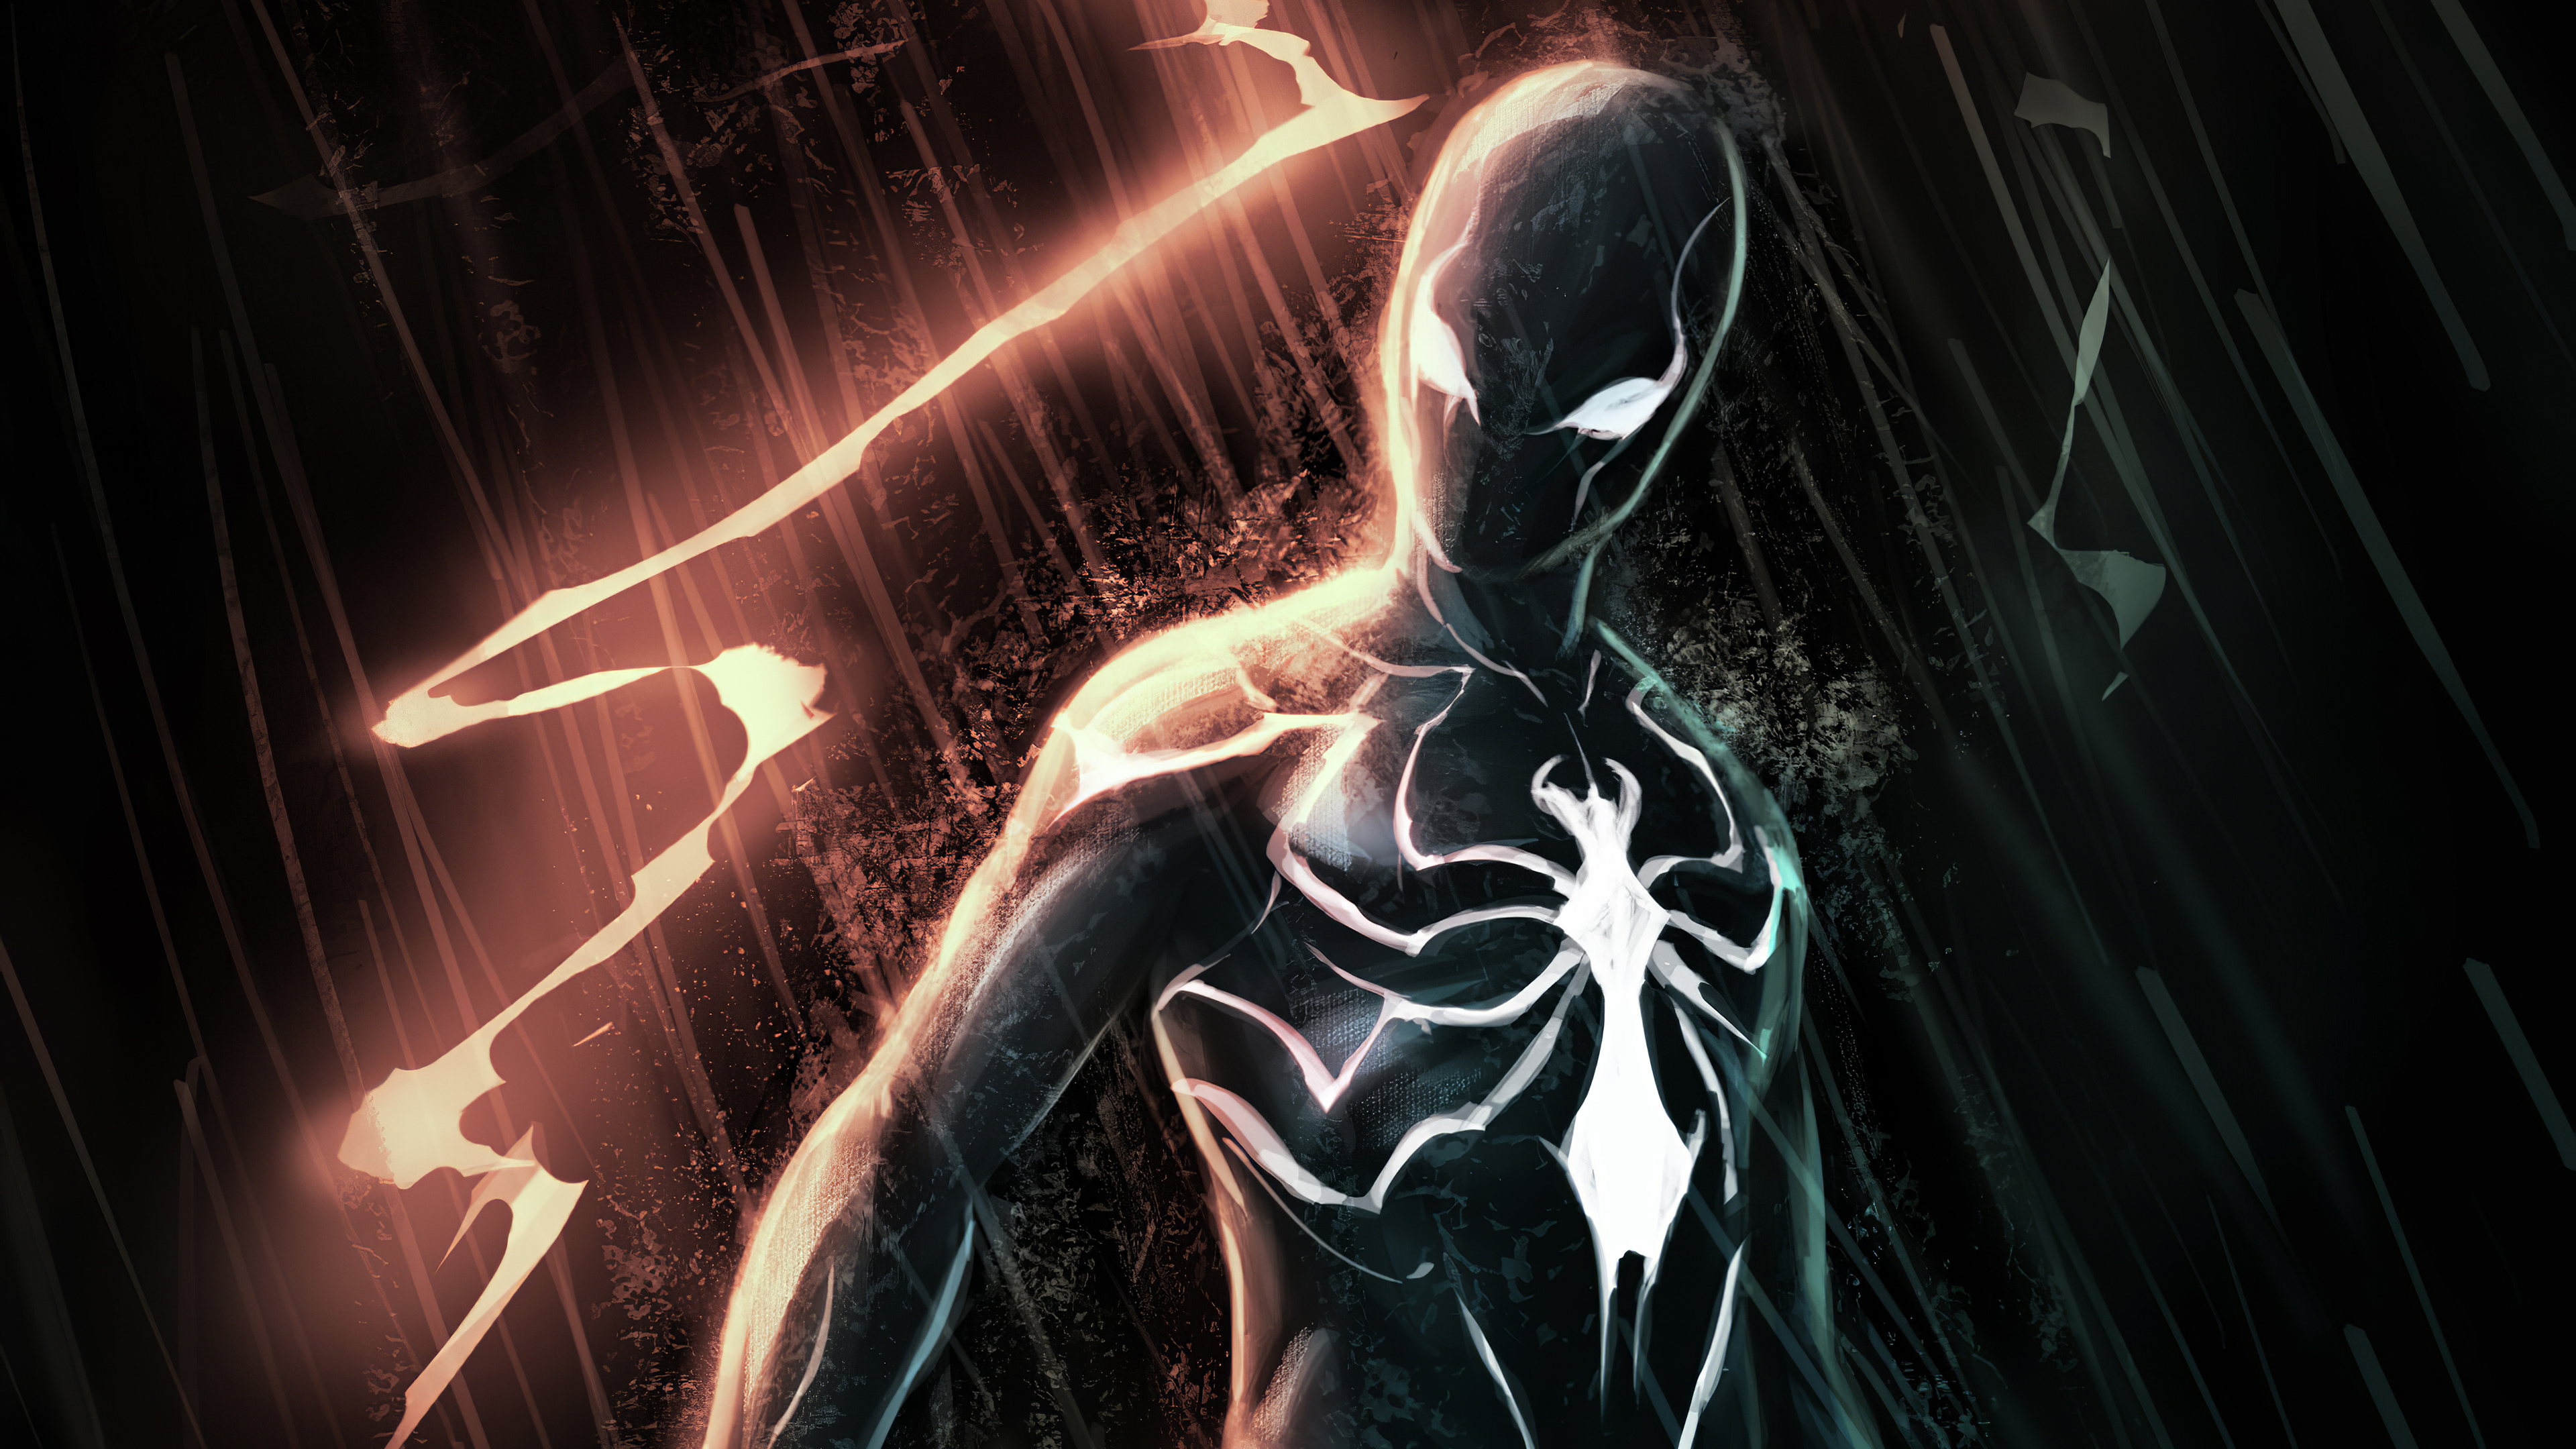 black spiderman in dark 1572368765 - Black Spiderman In Dark - superheroes wallpapers, spiderman wallpapers, hd-wallpapers, digital art wallpapers, artwork wallpapers, artstation wallpapers, artist wallpapers, 4k-wallpapers